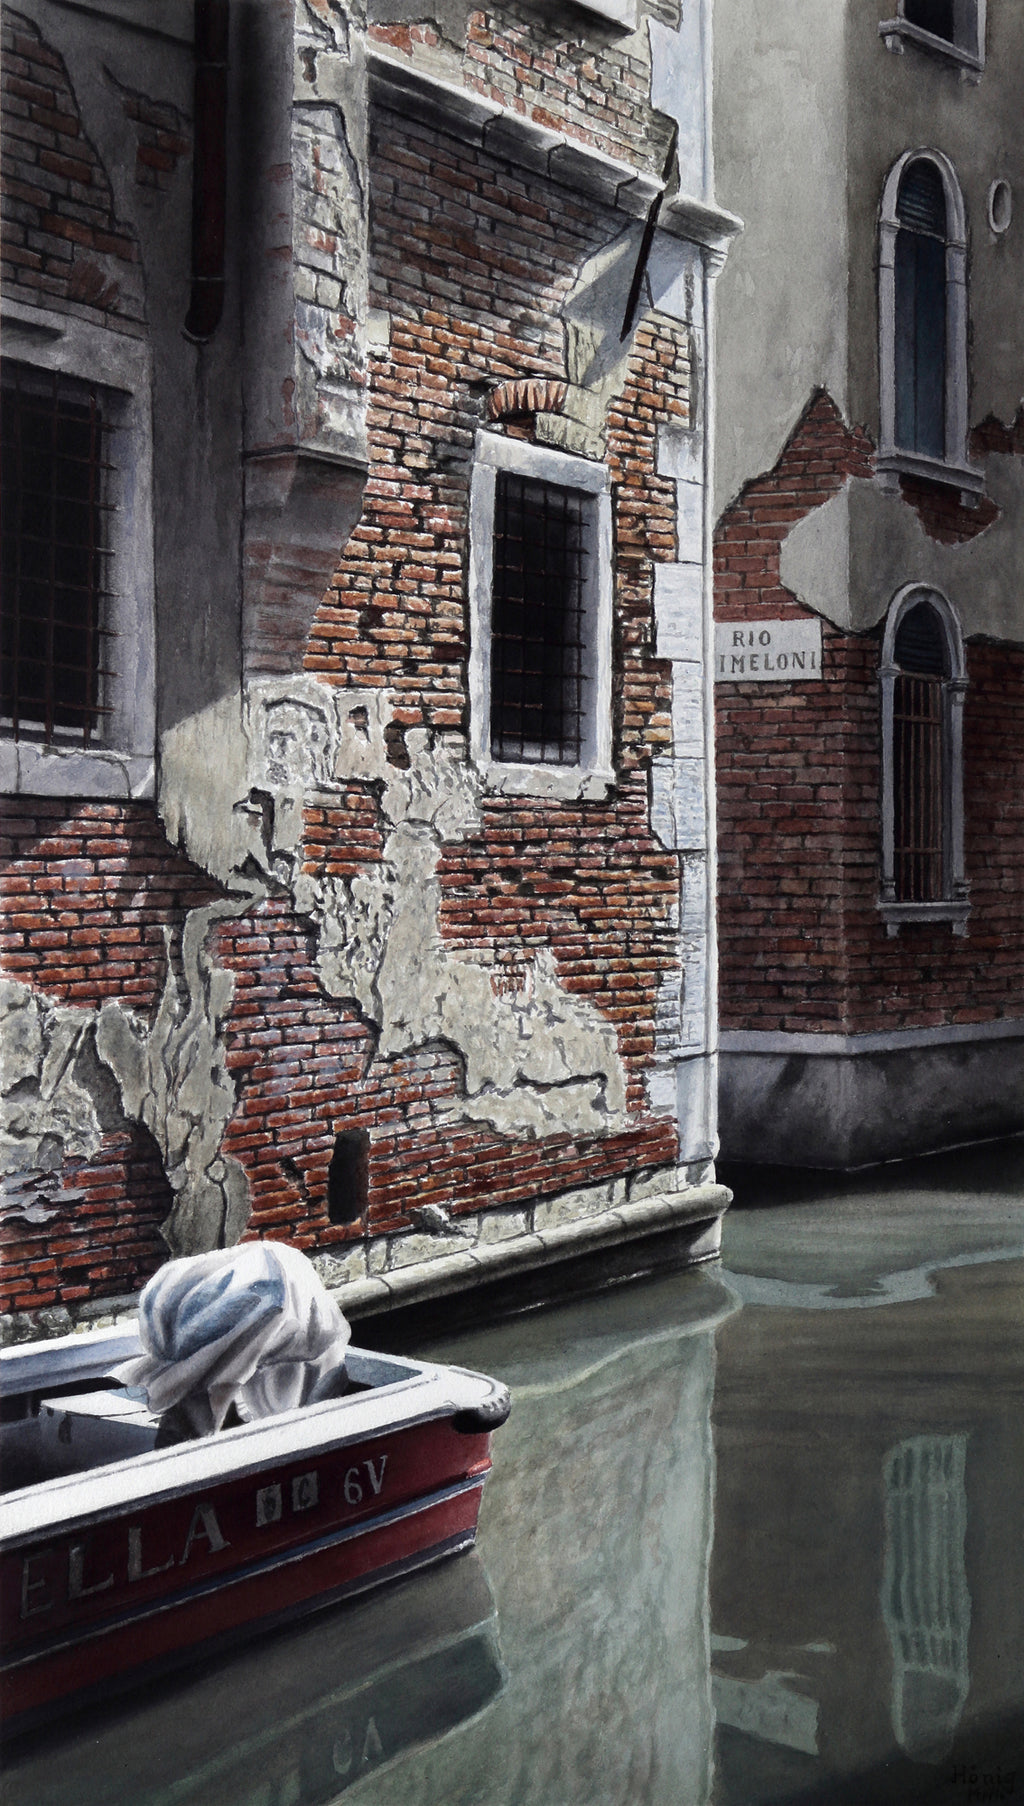 Manfred Hönig Painting Venedig Ella - Manfred Hönig Painting Venedig Ella - 5 Pieces Gallery - Contemporary Art & Photography